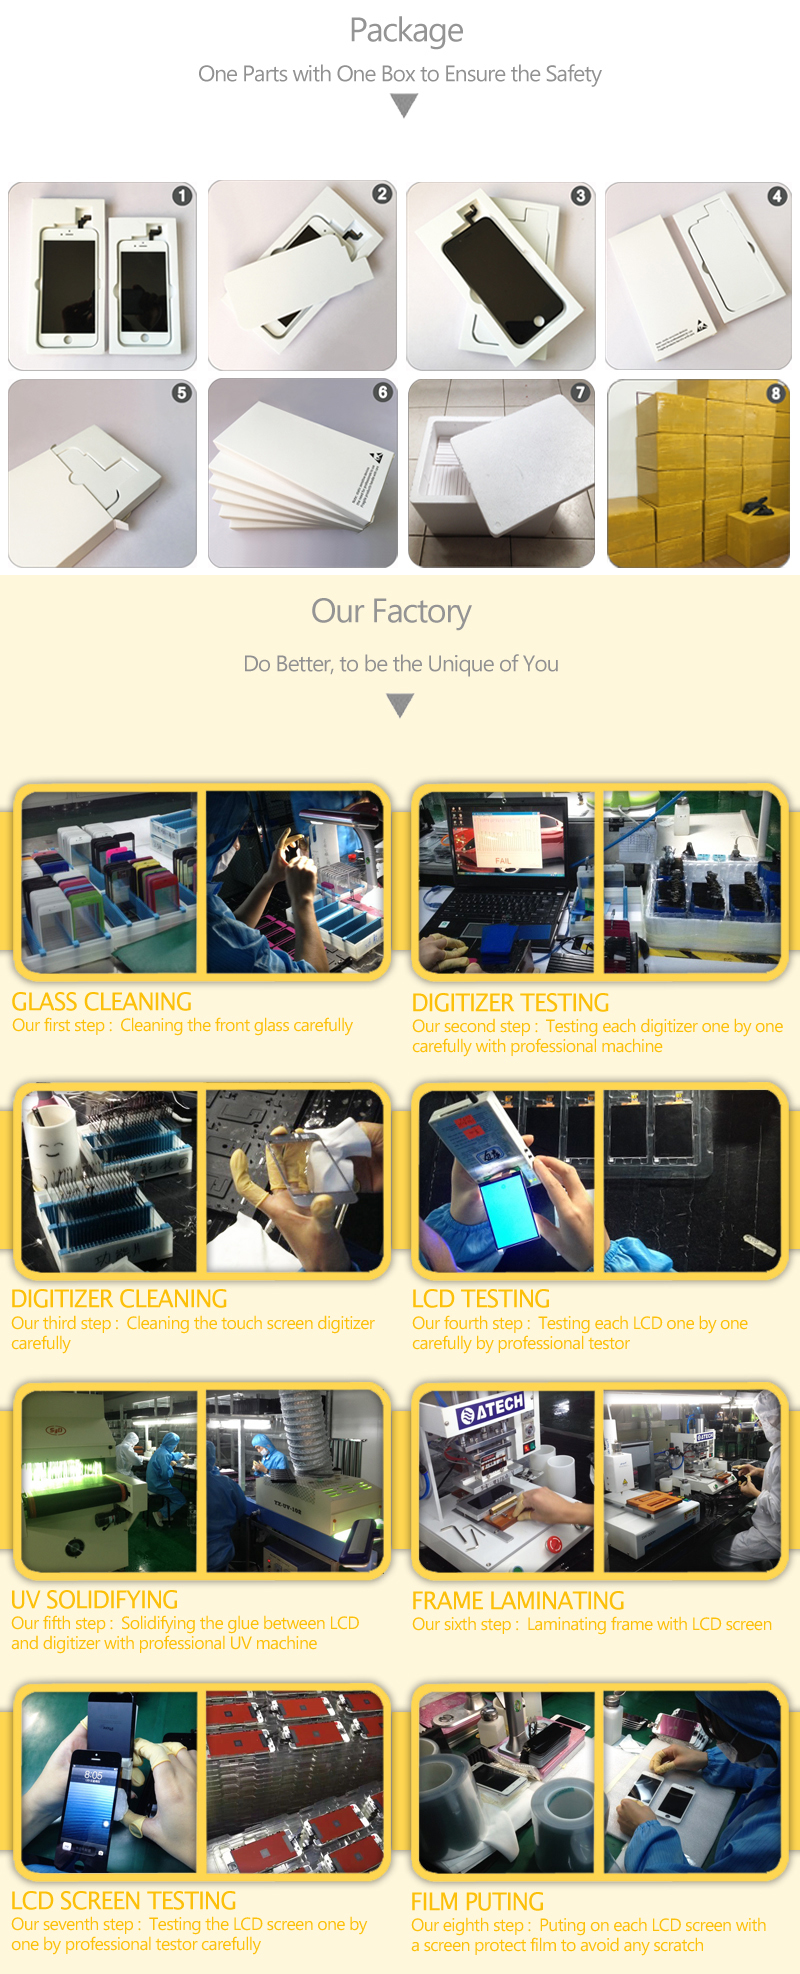 2.Package Factory